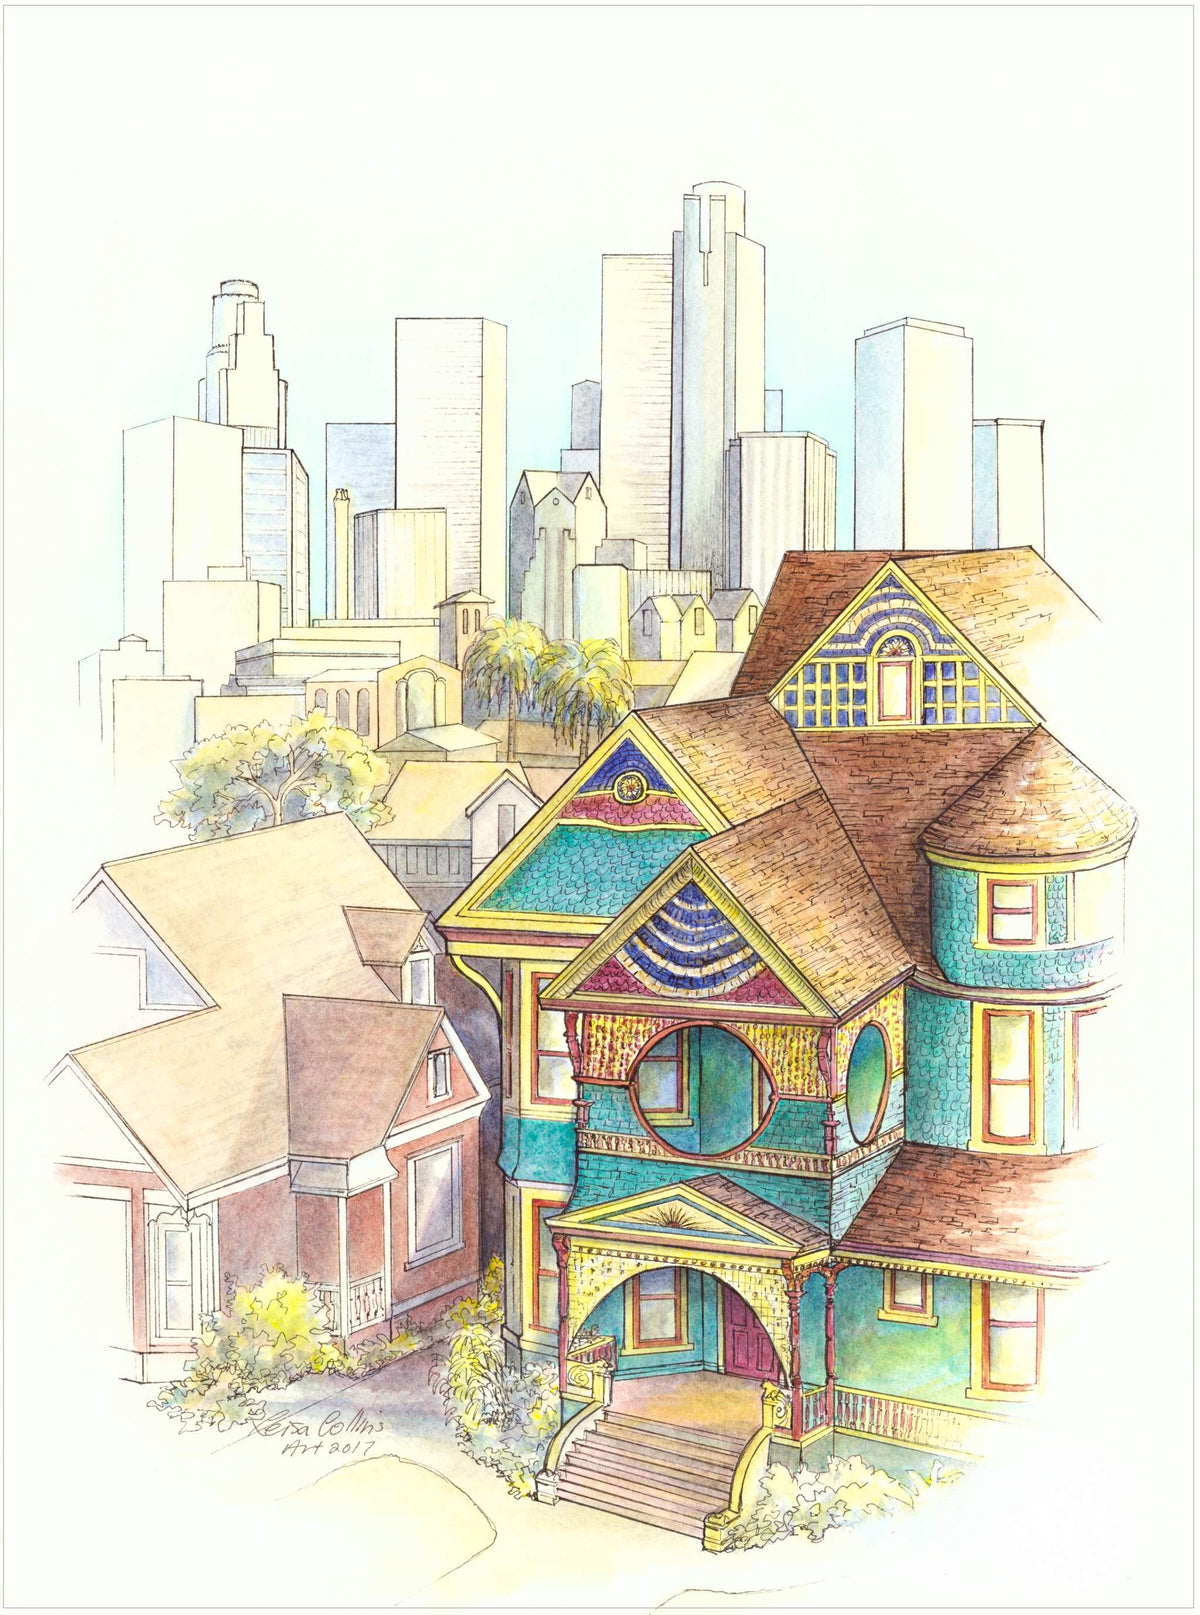 leisa-collins-art-shop - Los Angeles Cityscape Old and New - Pen and watercolor